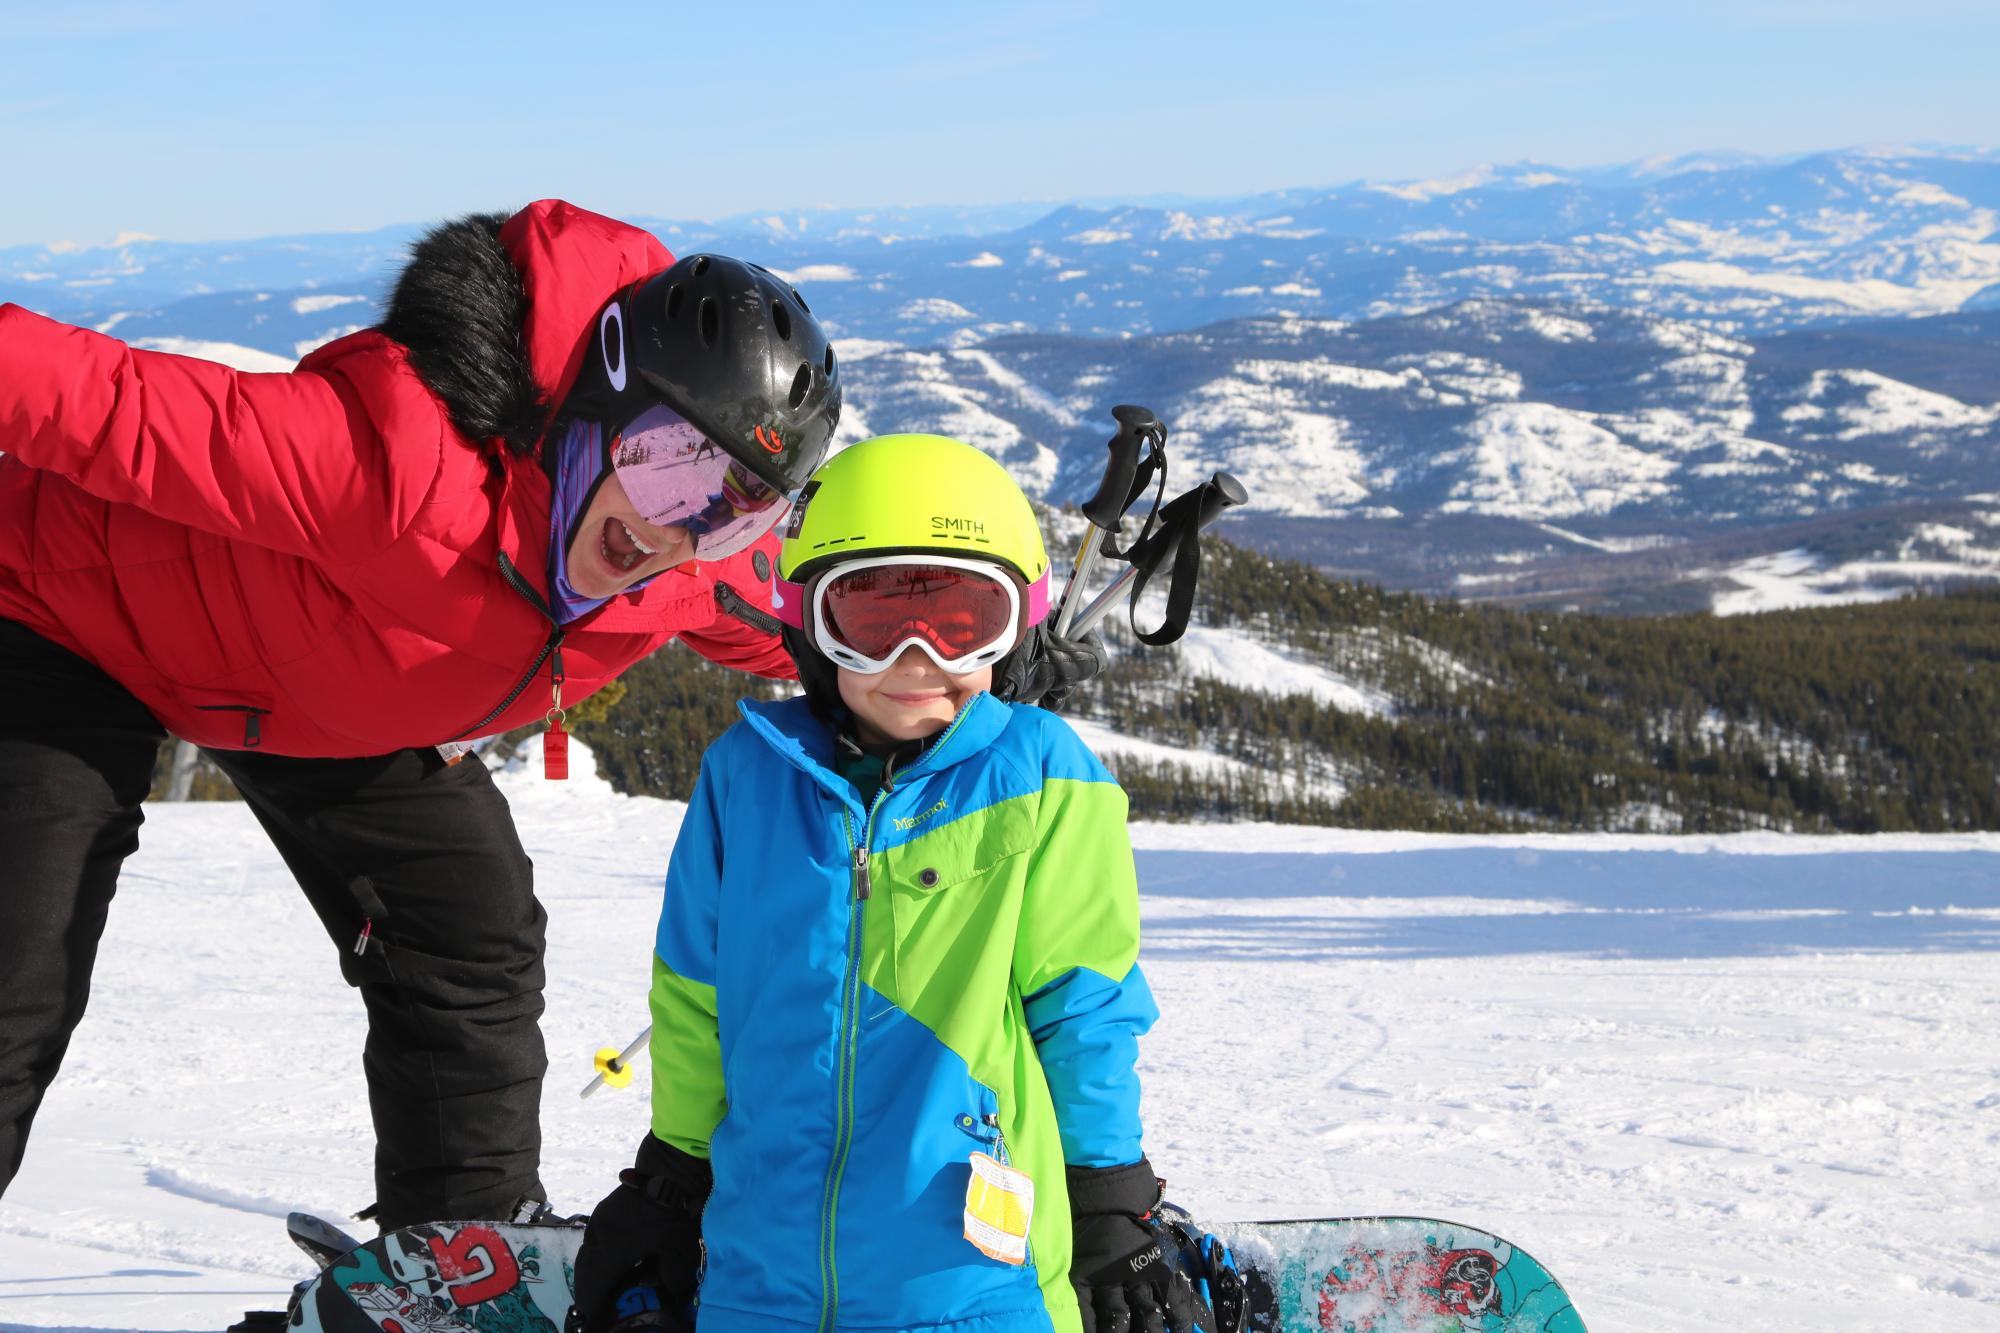 Skiing at Baldy Mountain Resort